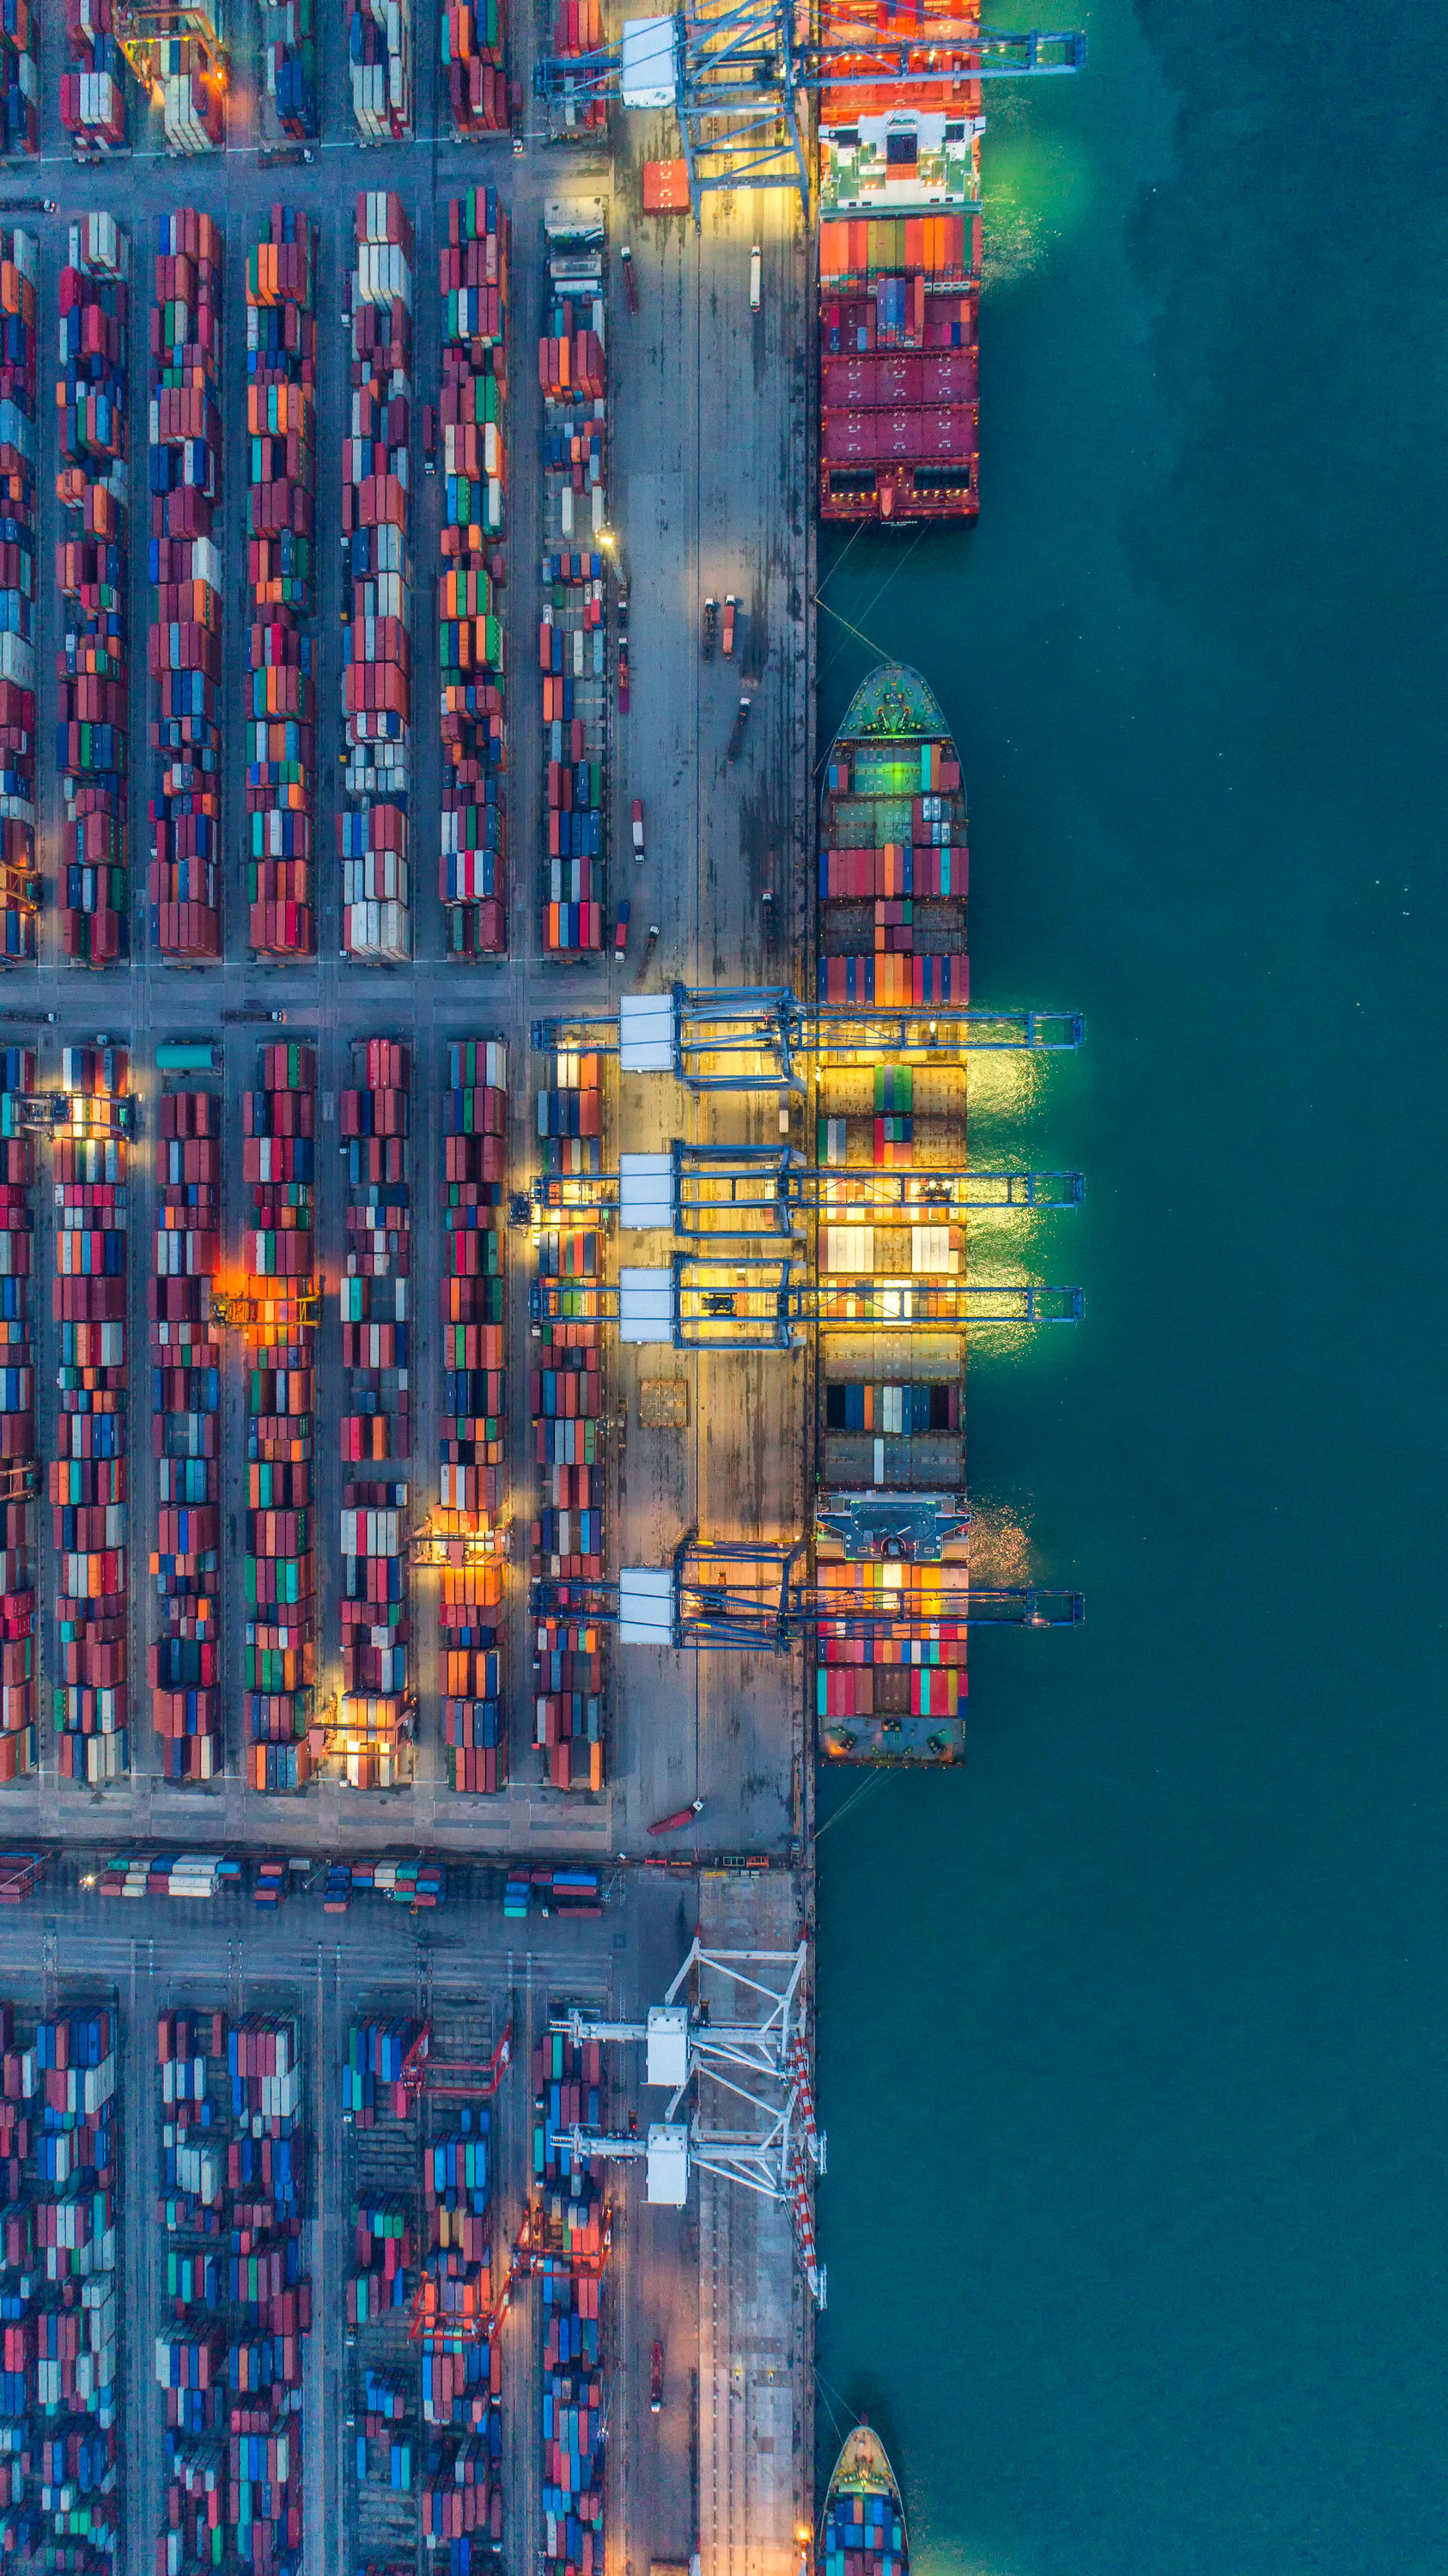 Overhead view of shipping container loading bay at night